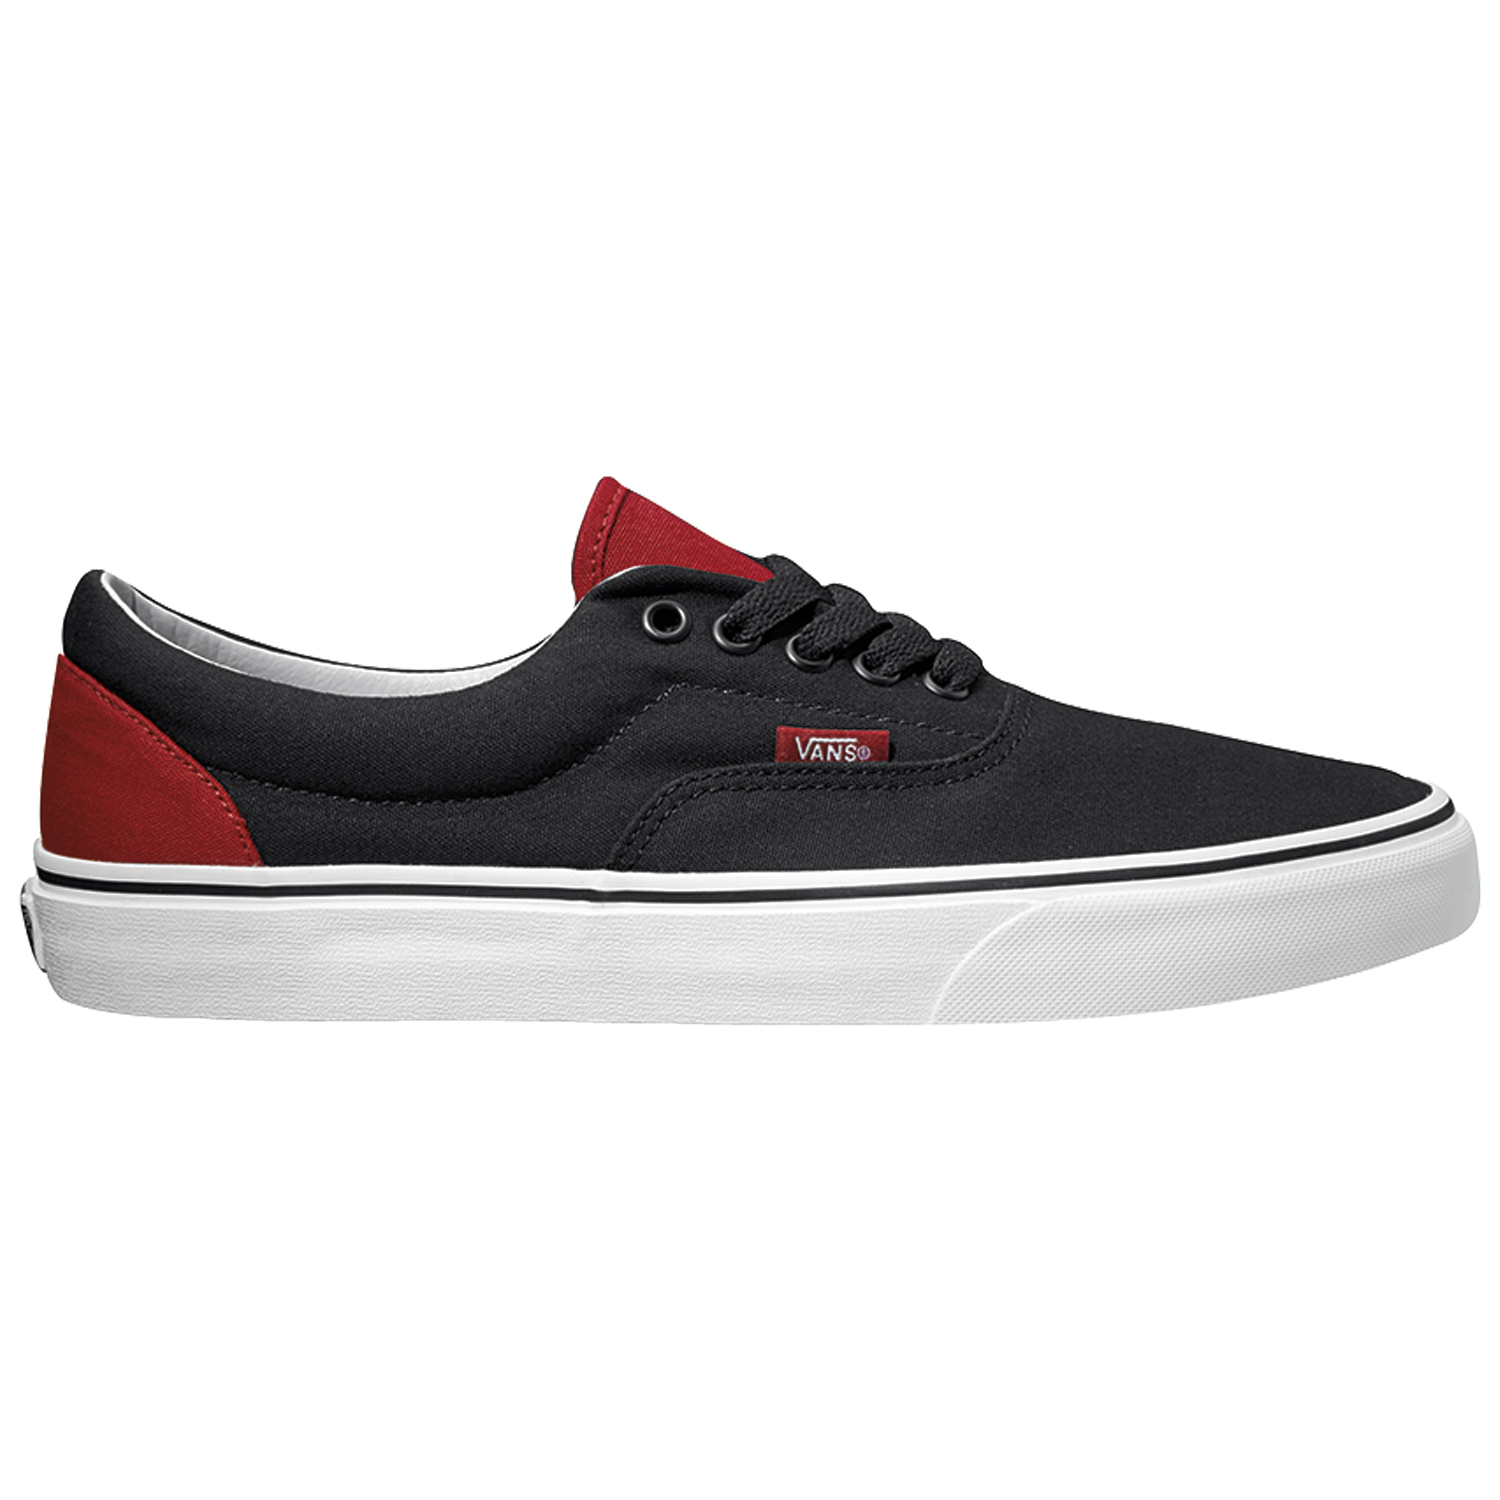 vans-era-pop-black-chili-pepper-99-90